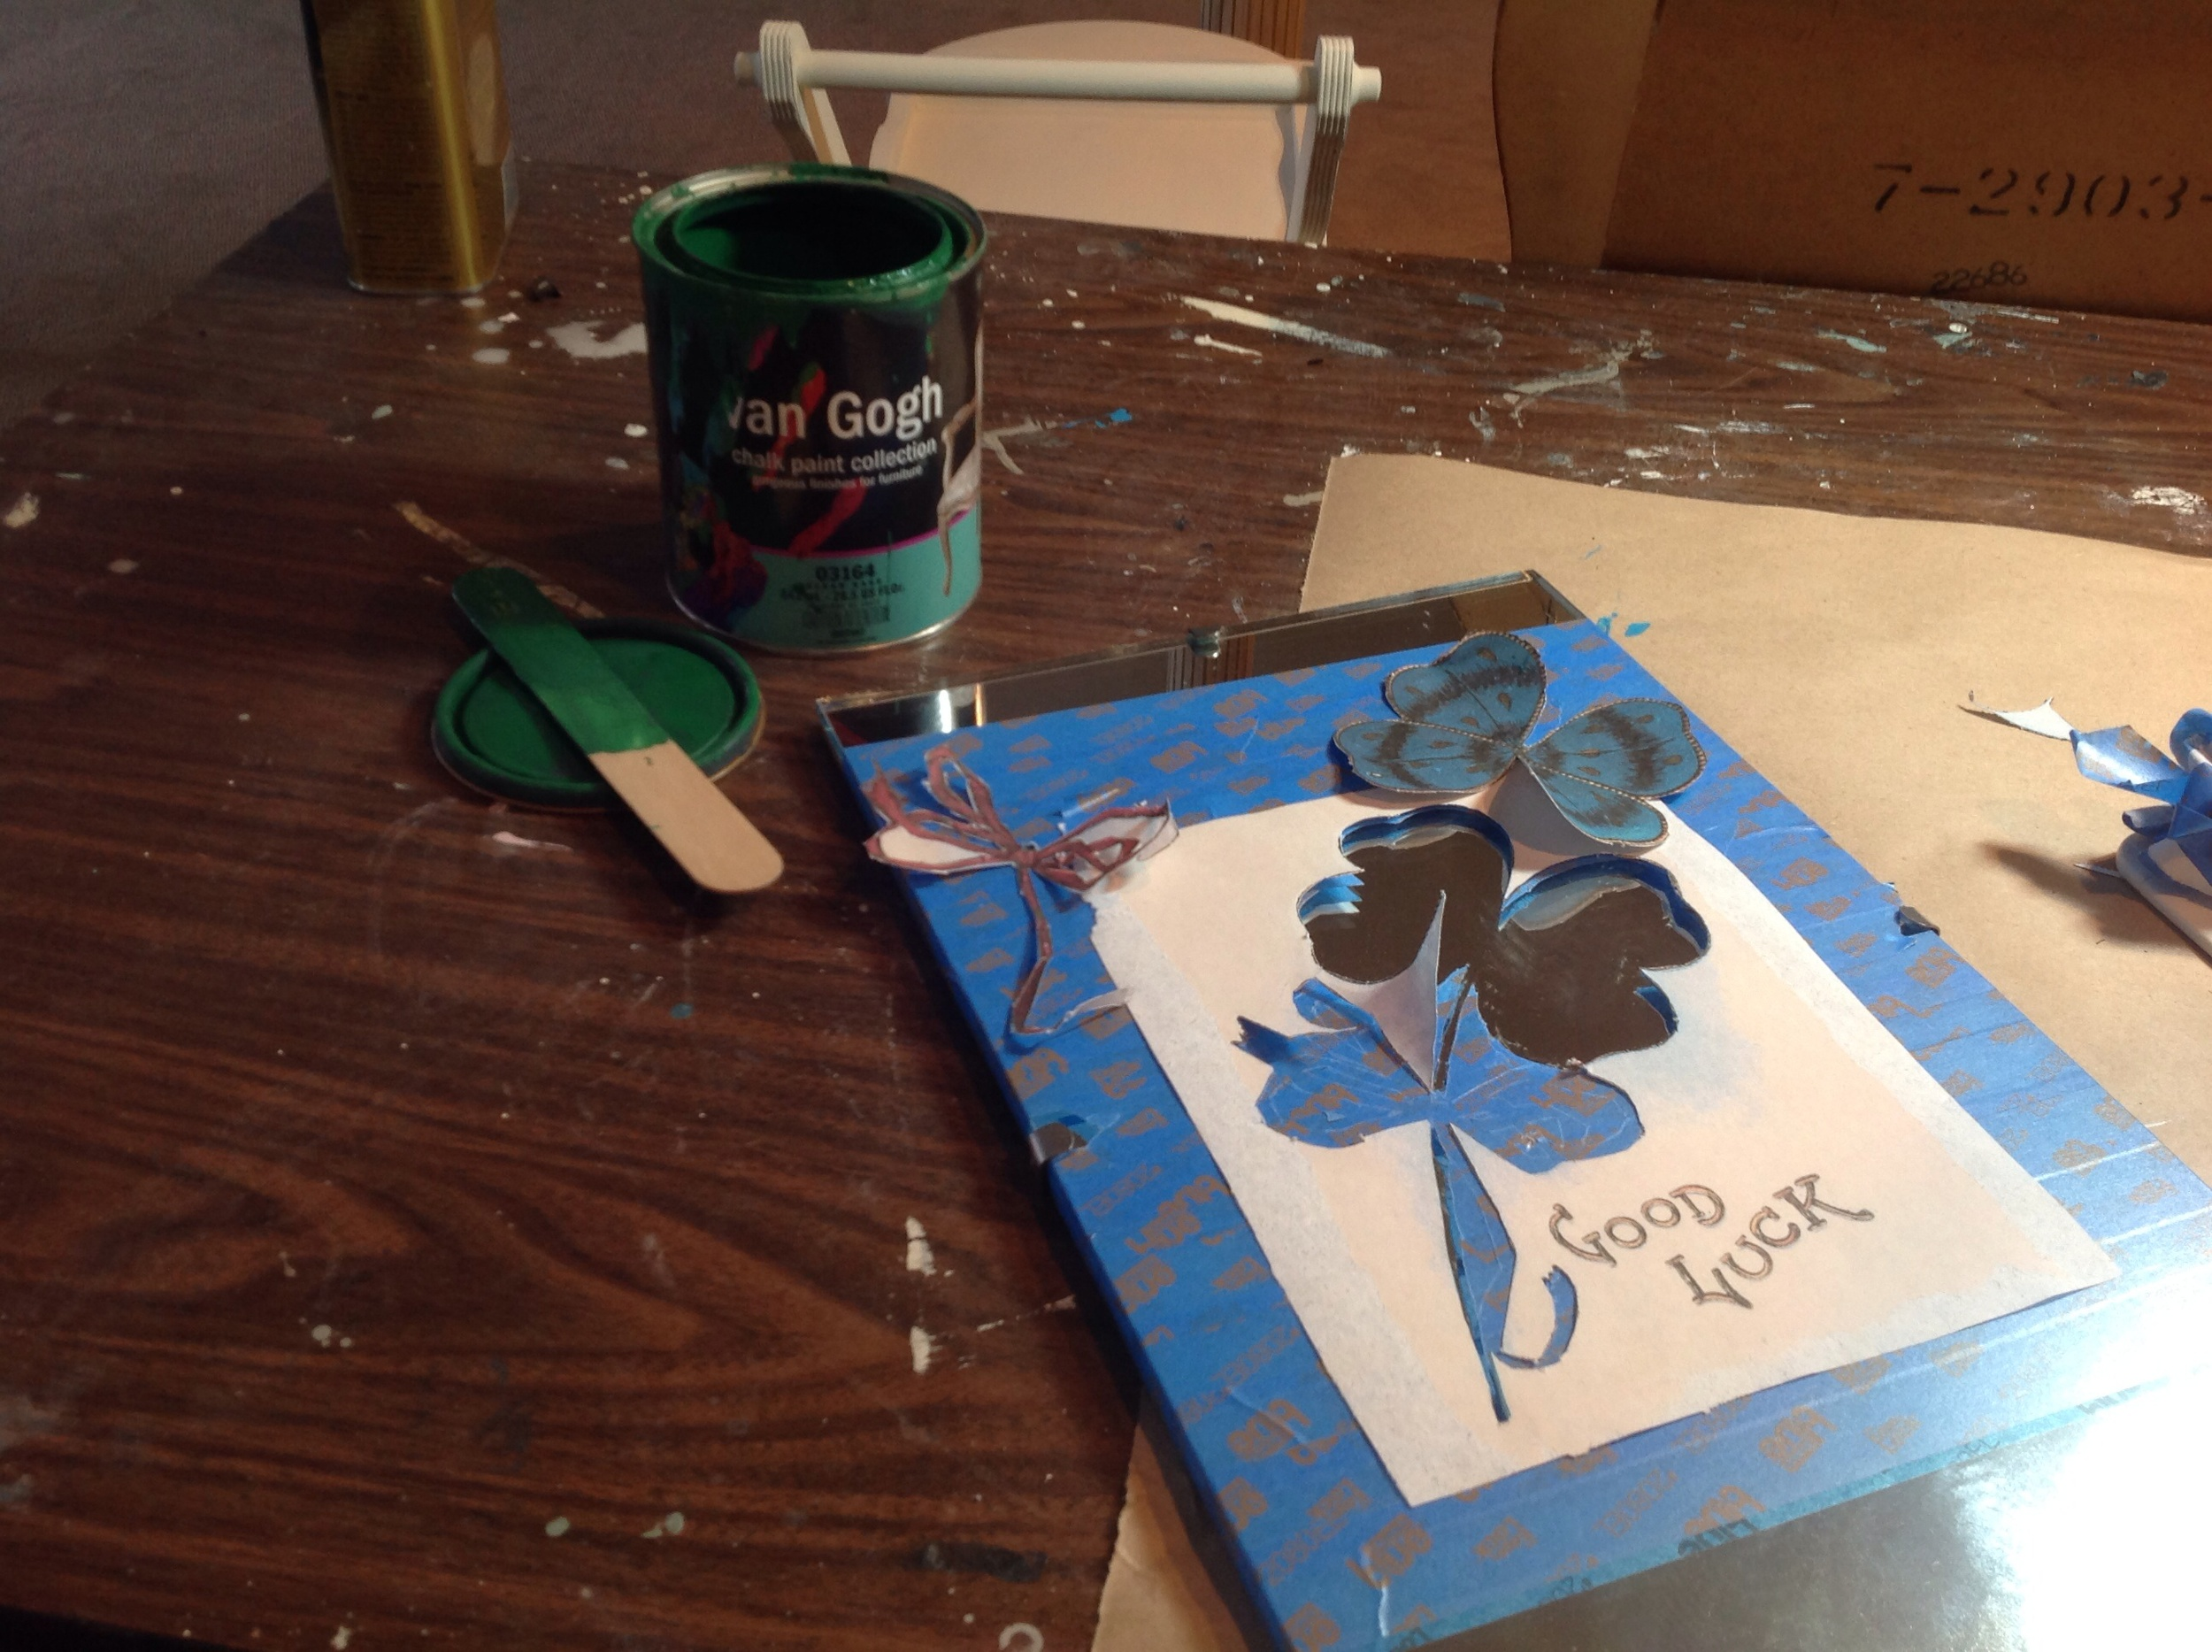 I cut out the red bow but did not remove the blue tape until after the shamrock was painted and dry.